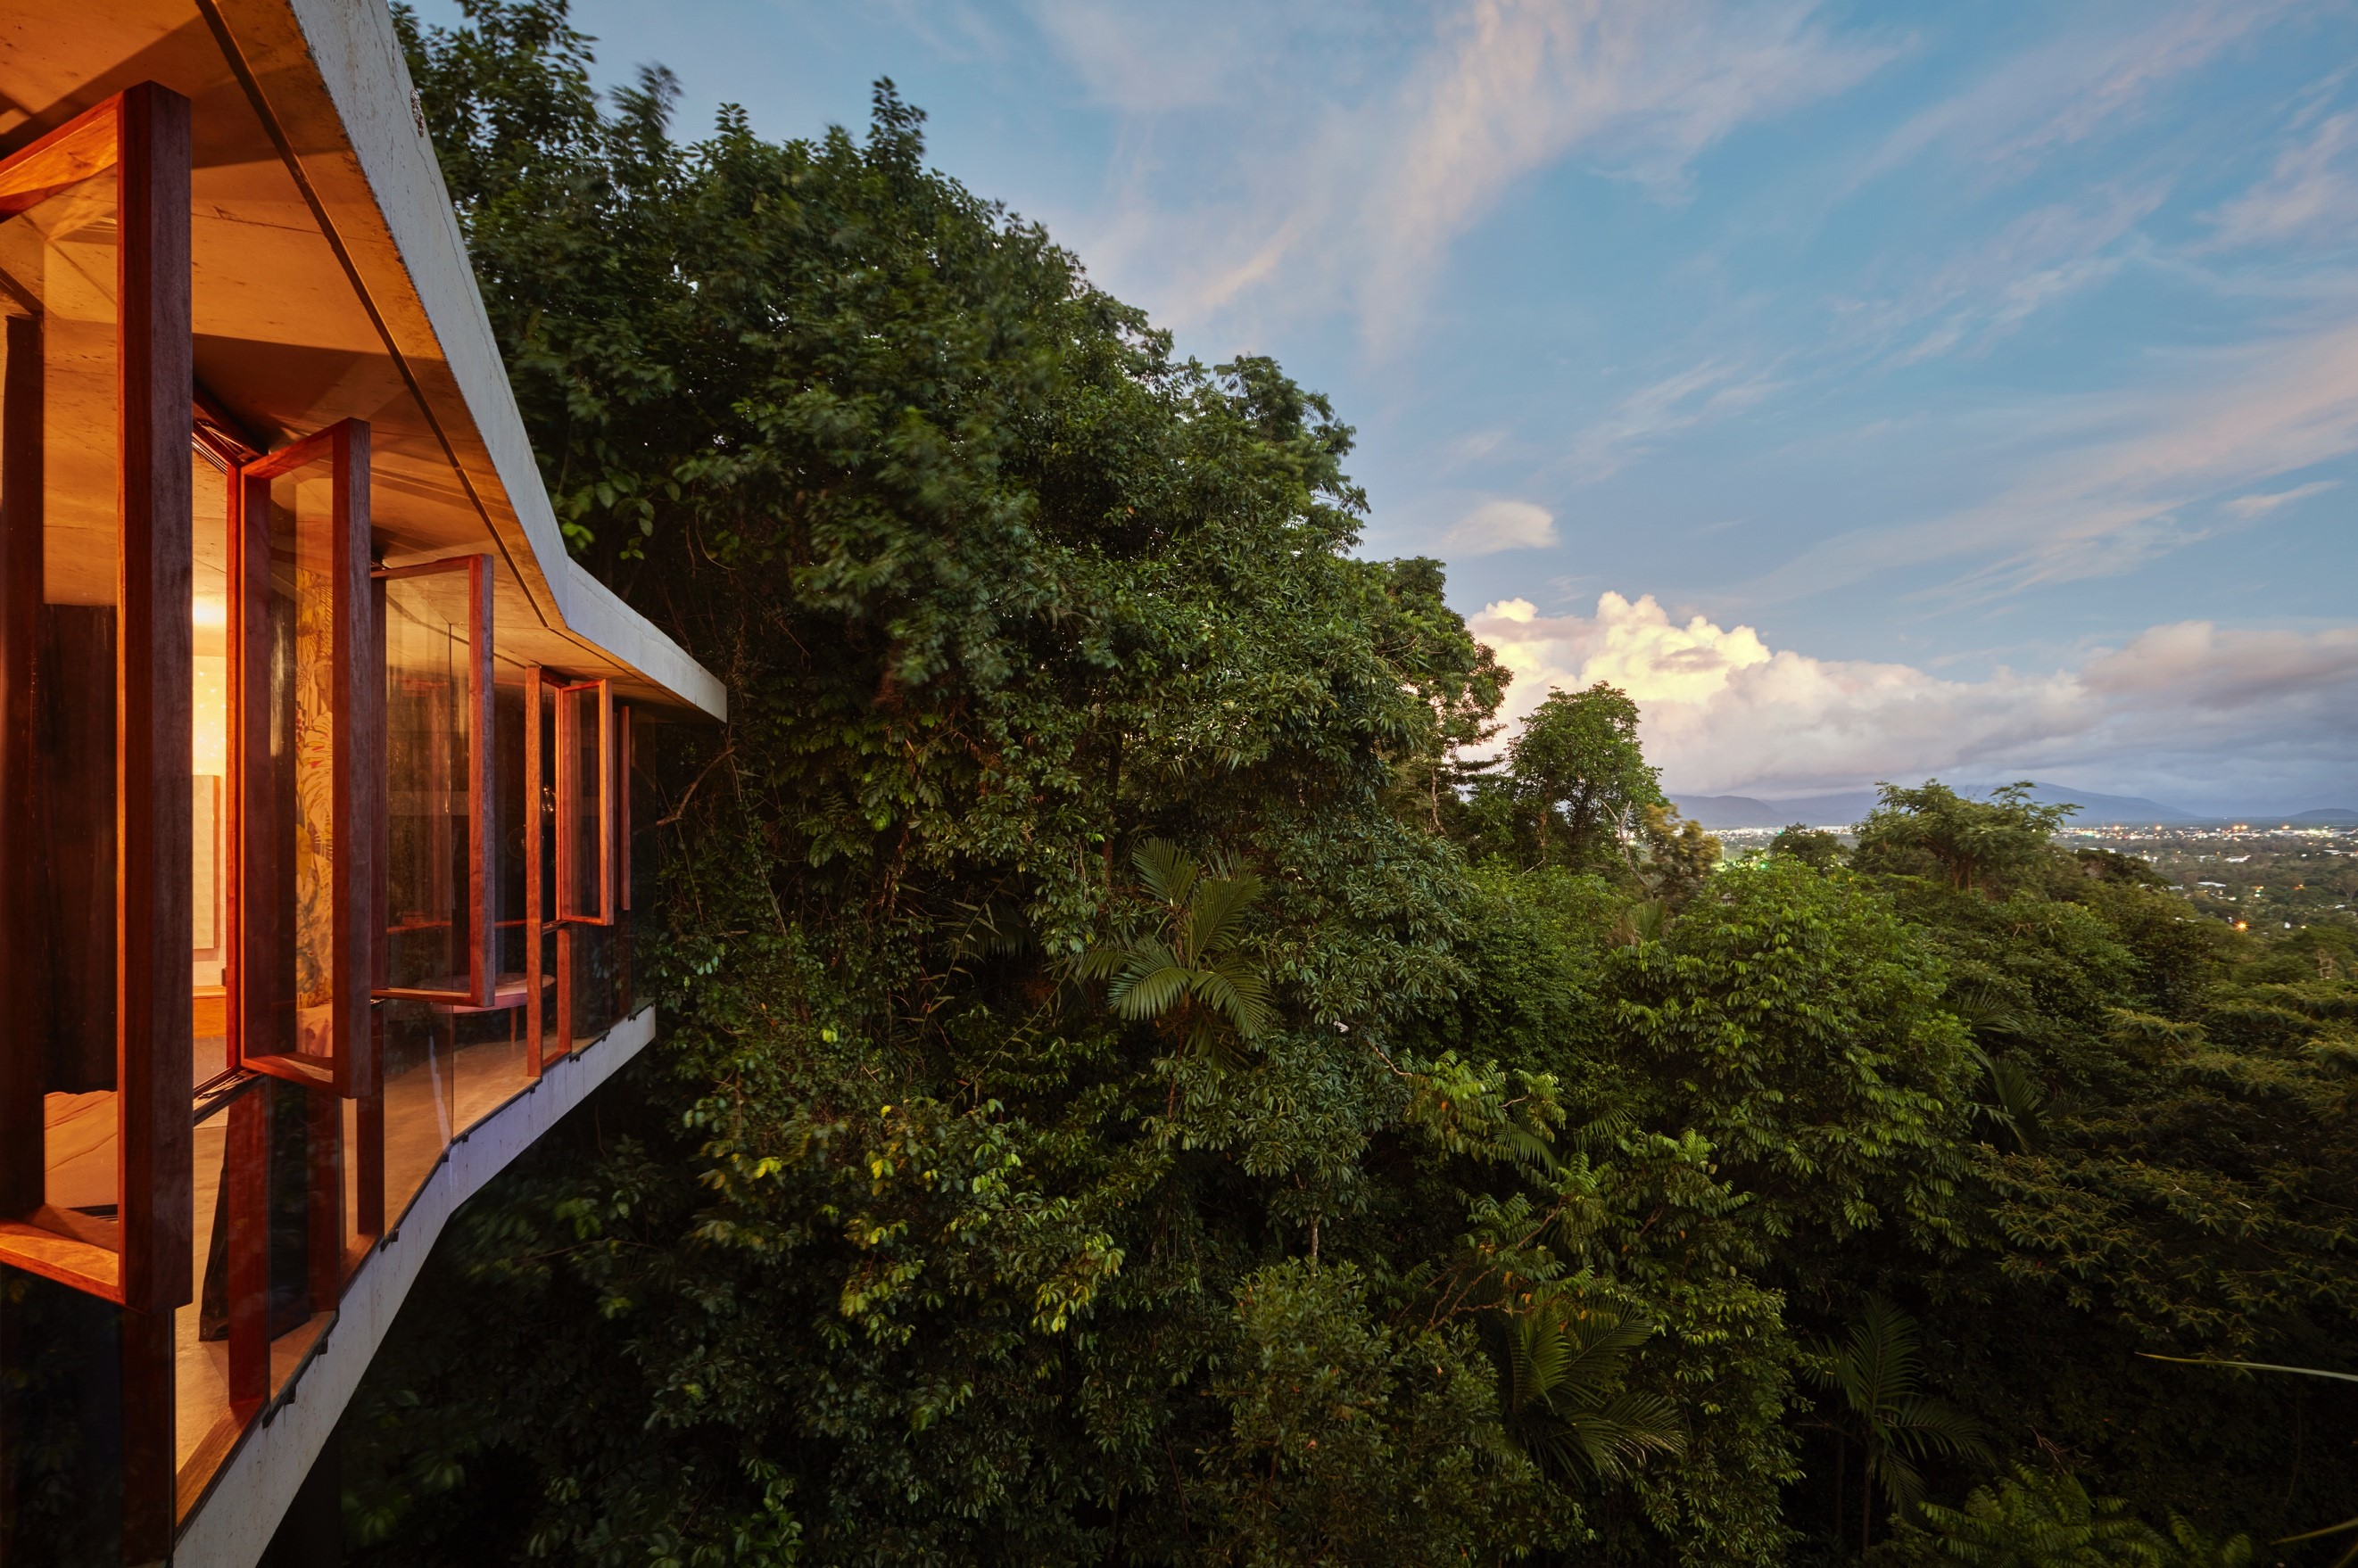 The Couple Proceeded To Win The National Award For Residential Architecture For Planchonella House That Same Year.